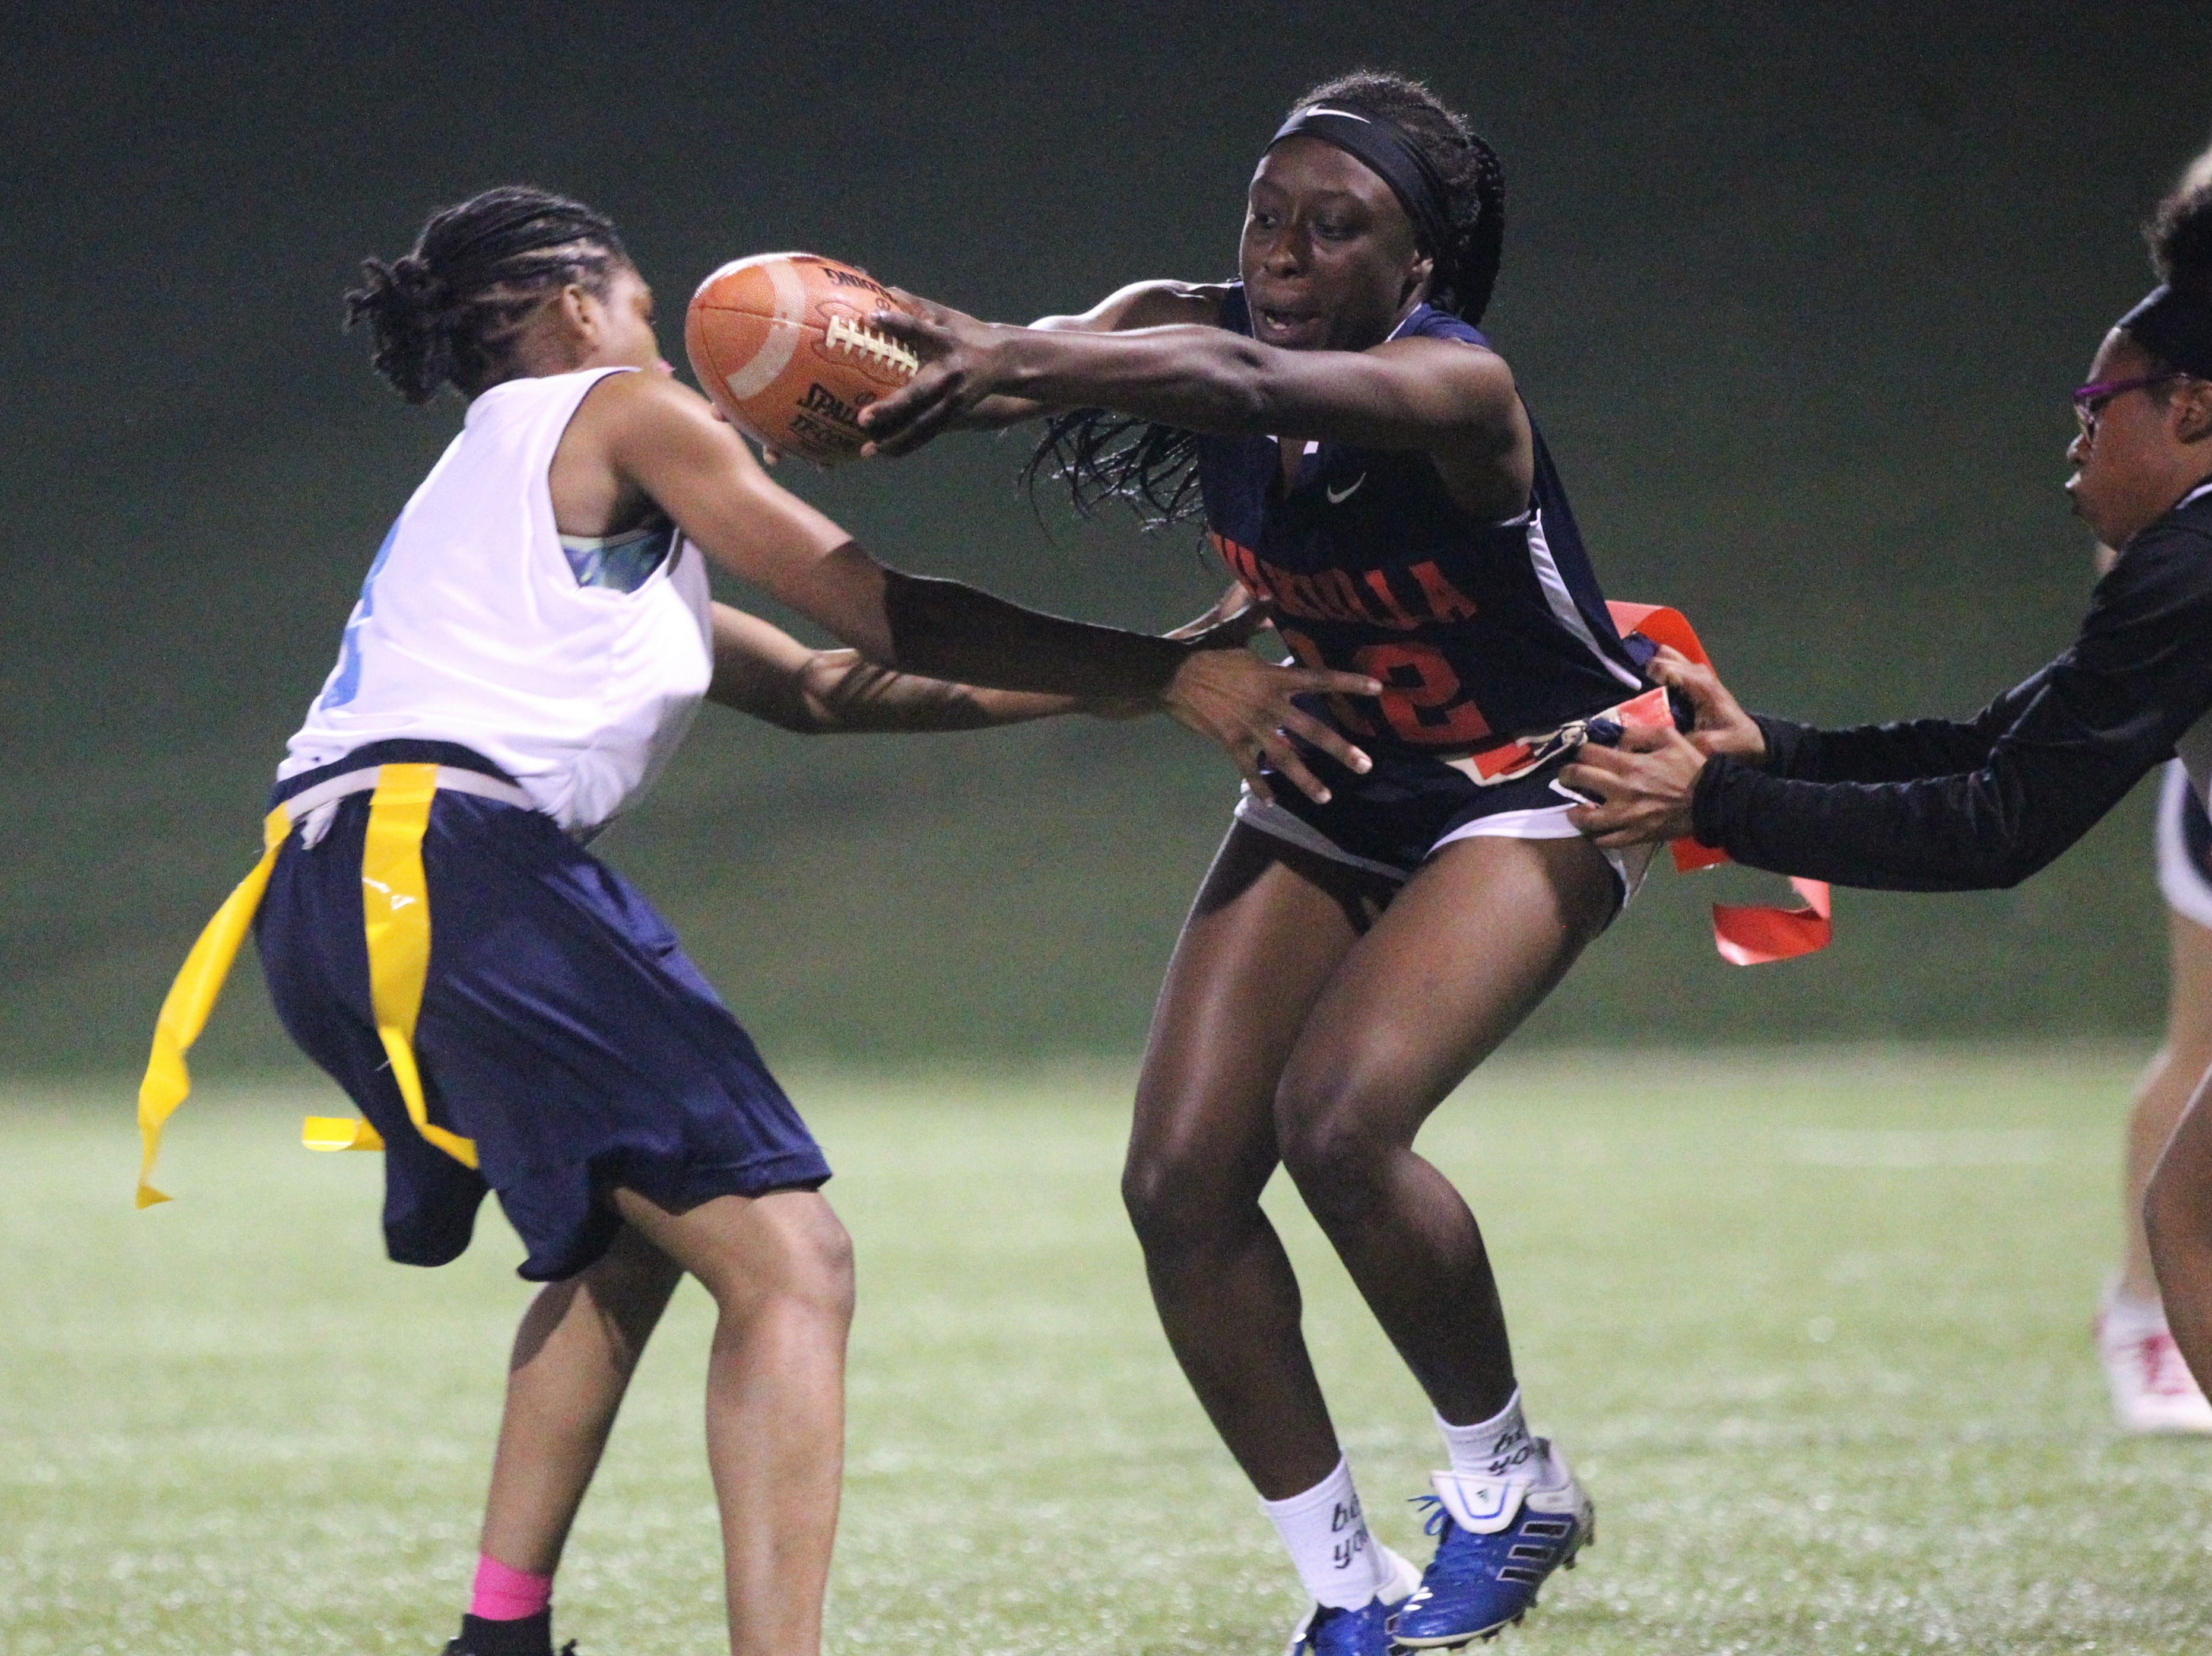 Wakulla running back Ja'daa Wilson has her flags pulled as the War Eagles and Gadsden County play during the 2019 flag football preseason classic at Florida A&M's intramural turf fields on Feb. 27, 2019.